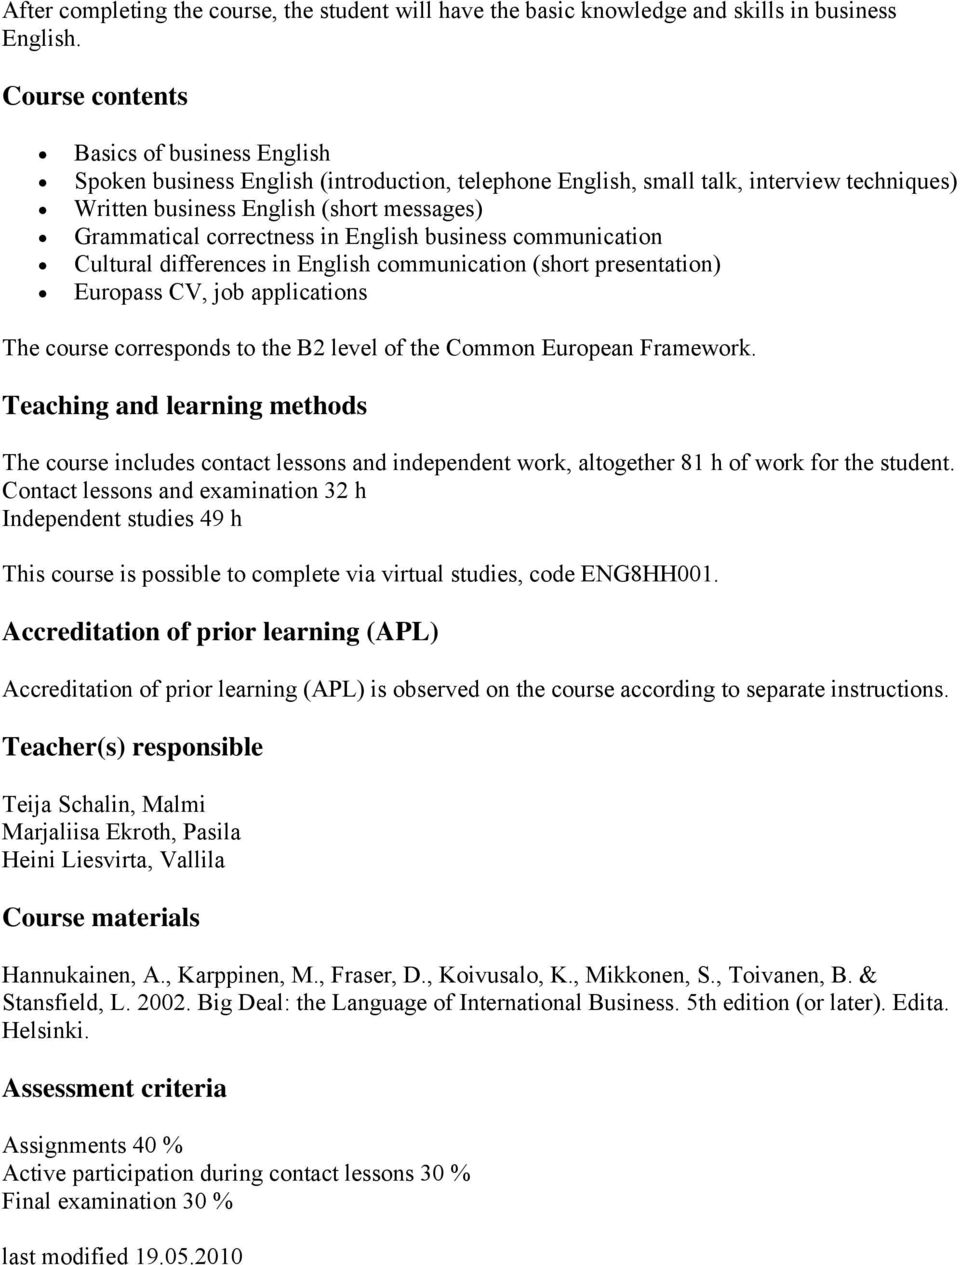 correctness in English business communication Cultural differences in English communication (short presentation) Europass CV, job applications The course corresponds to the B2 level of the Common